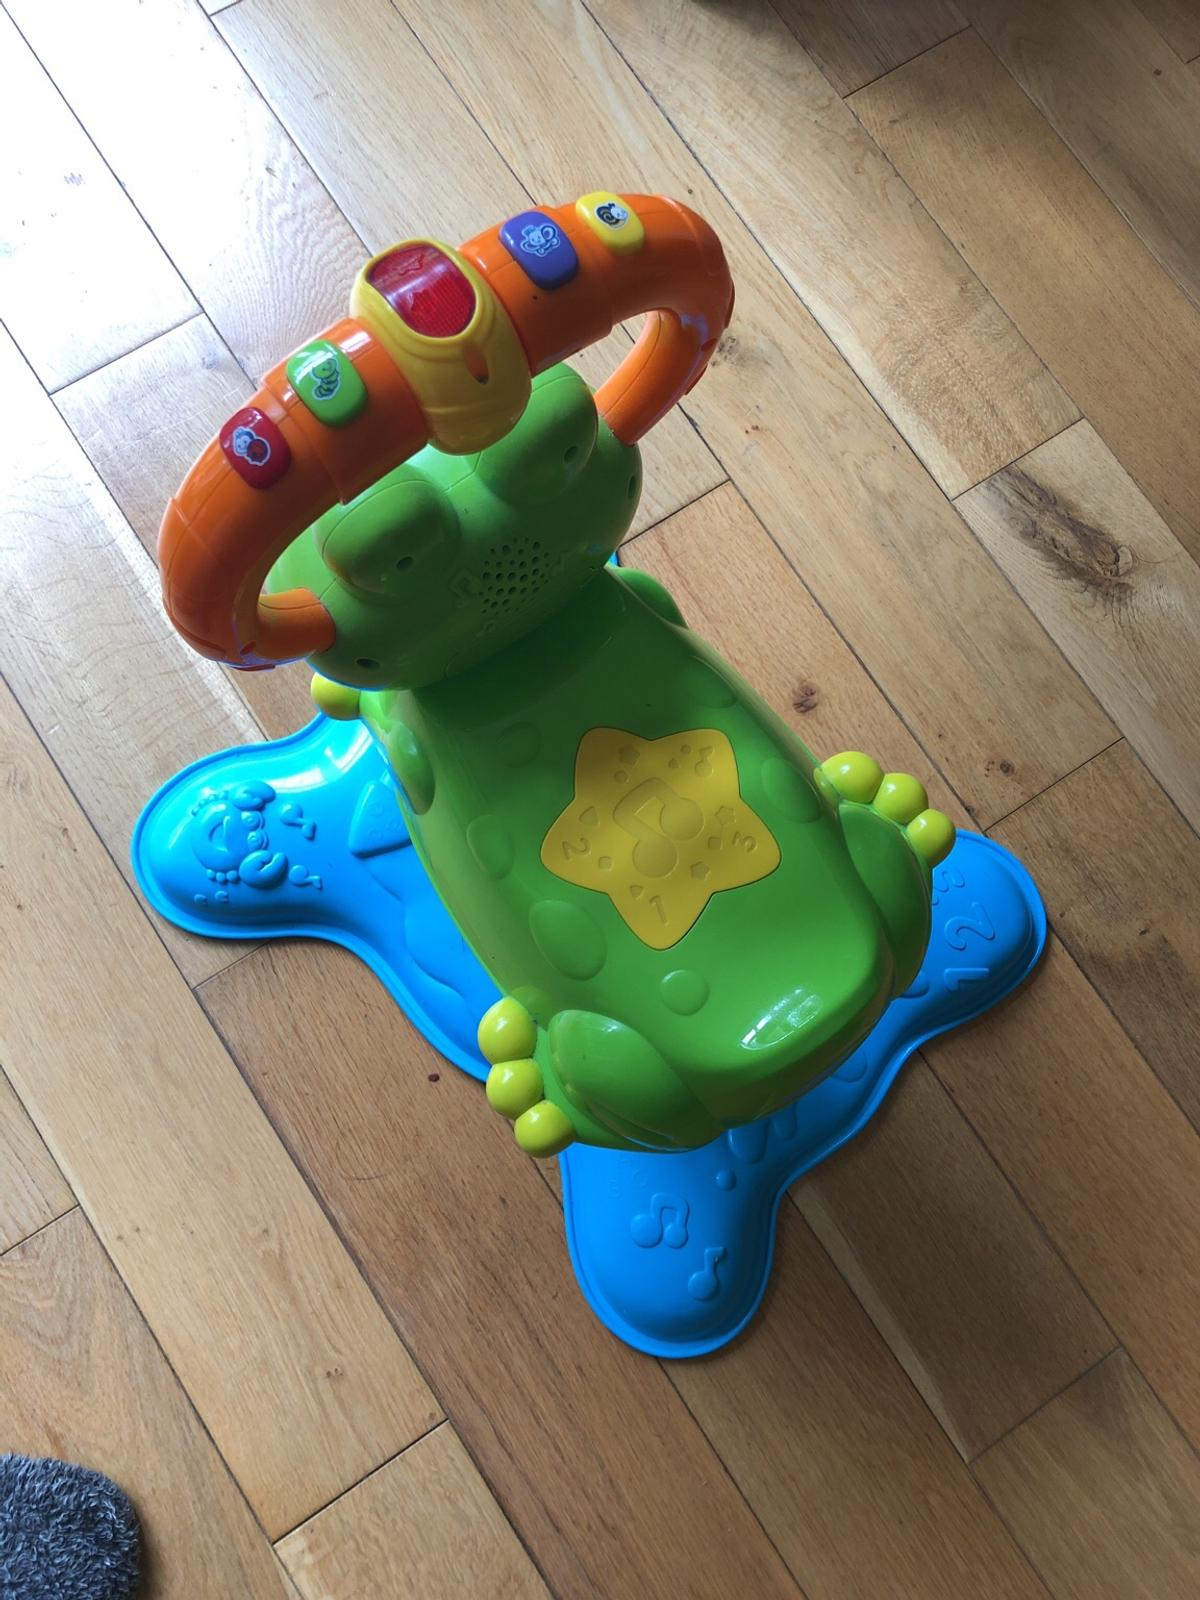 Perfect condition, great toy to bouncing and sitting, loads of fun for little fingers to press and twist, lovely music.